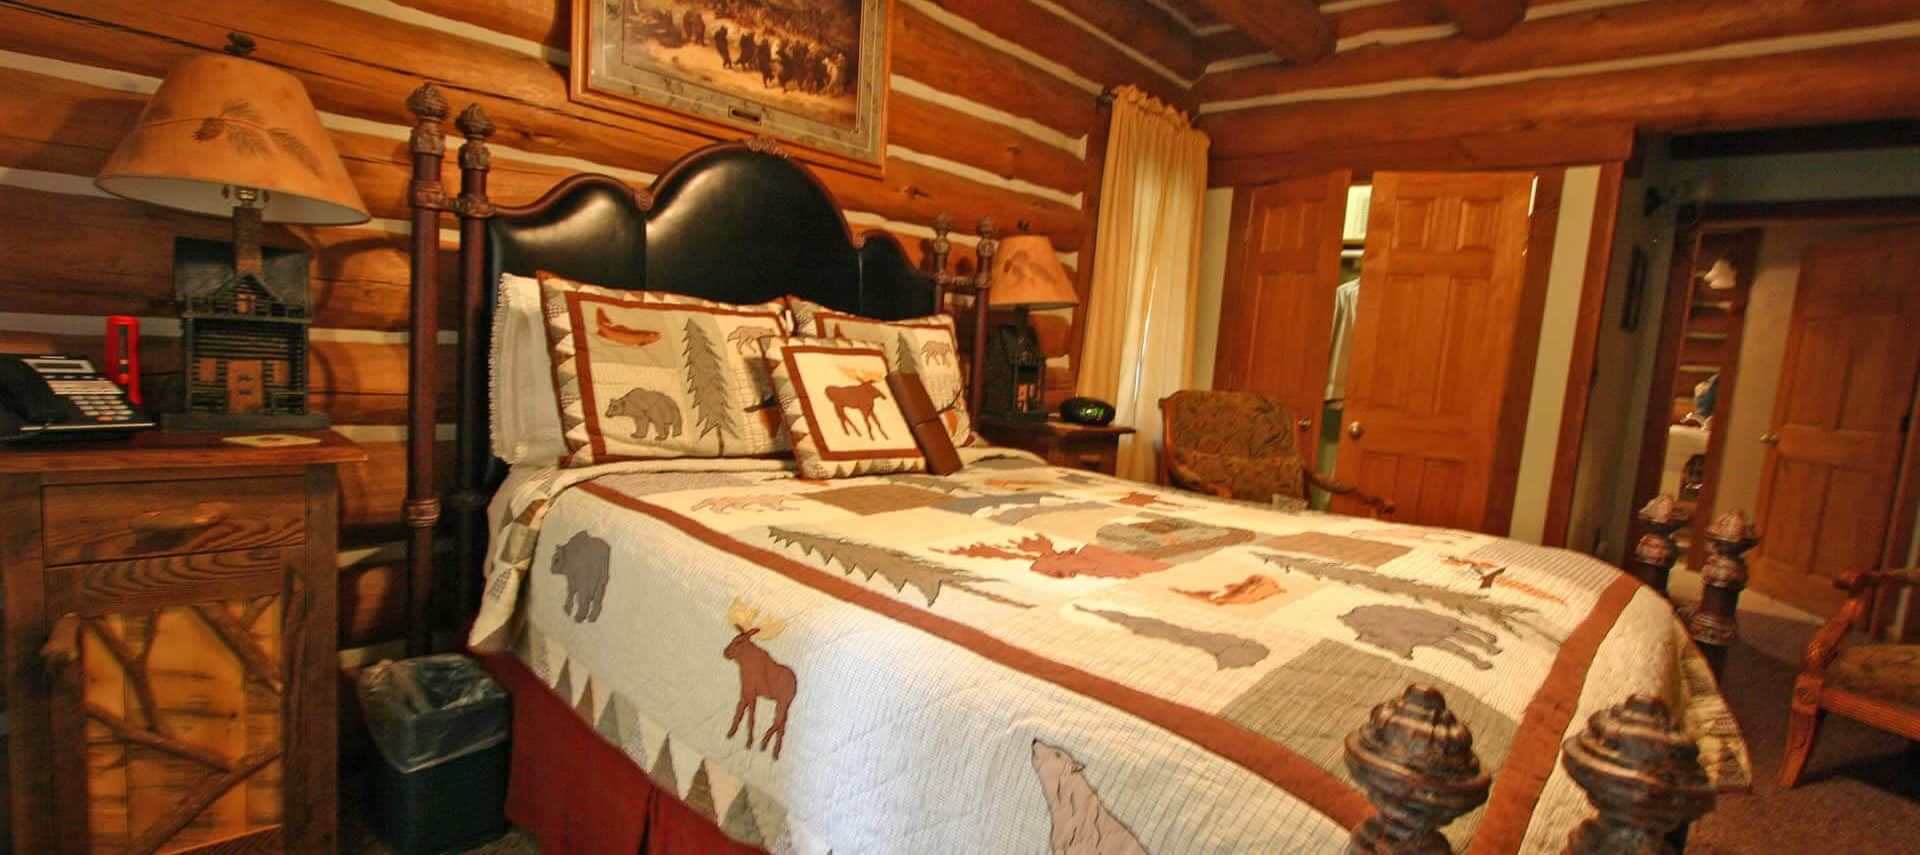 Log-cabin bedroom with large bed made up in a woods-themed quilt, two chairs and nightstands with lamps.